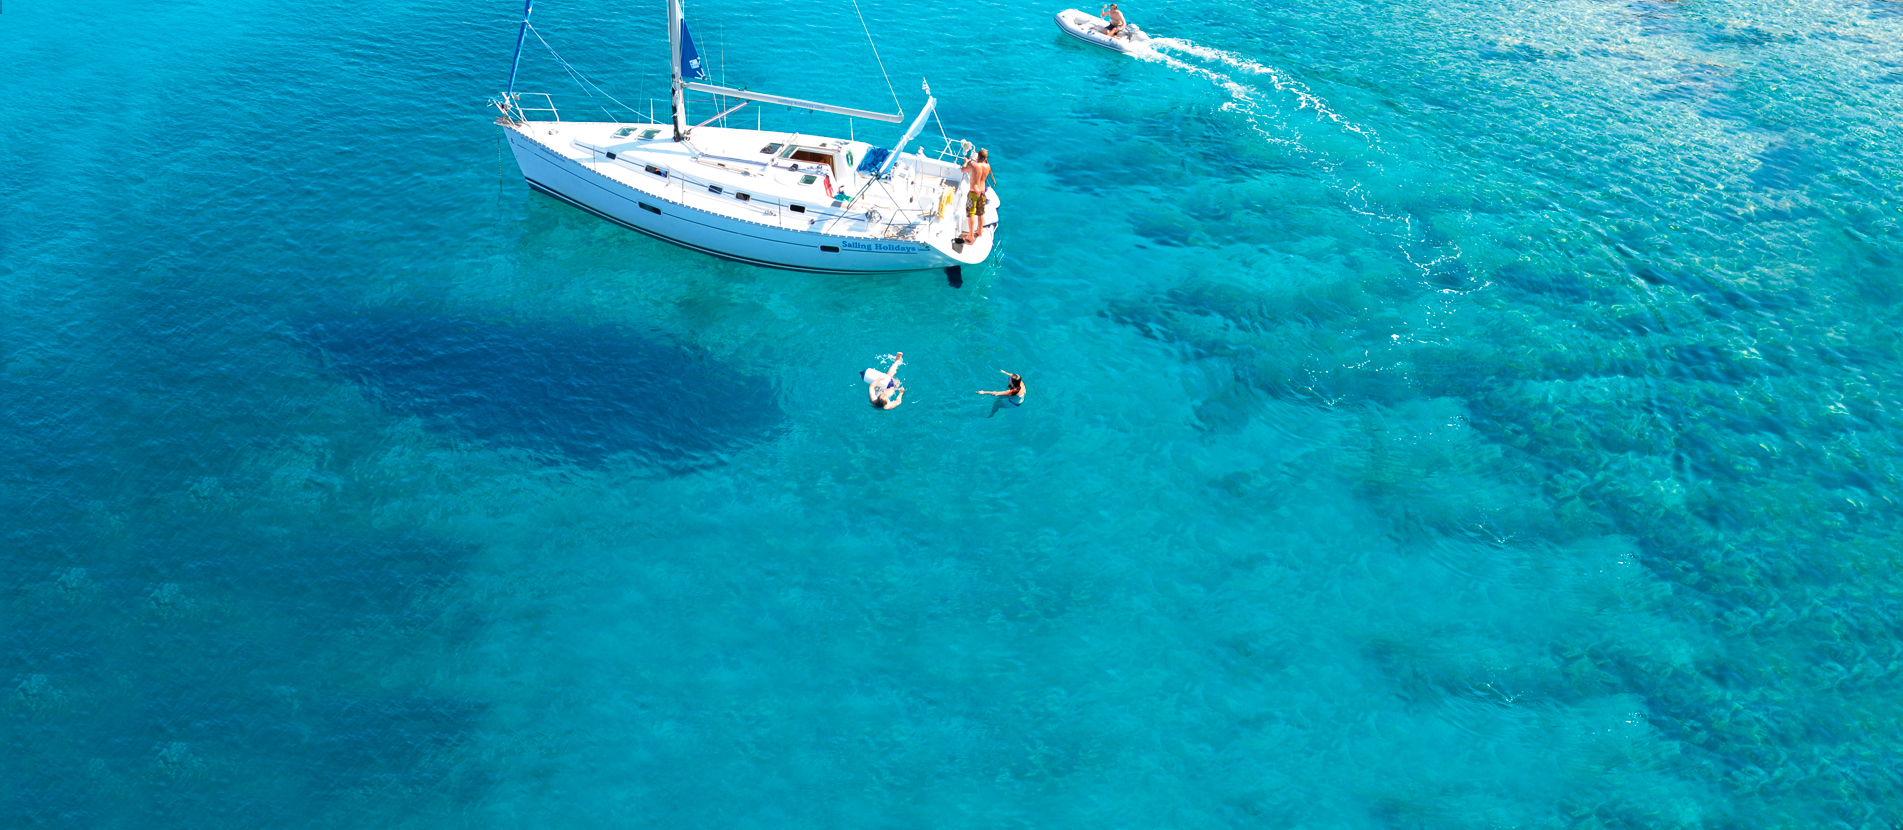 Corfu Sea School - RYA courses in Greece, learn to sail in ...